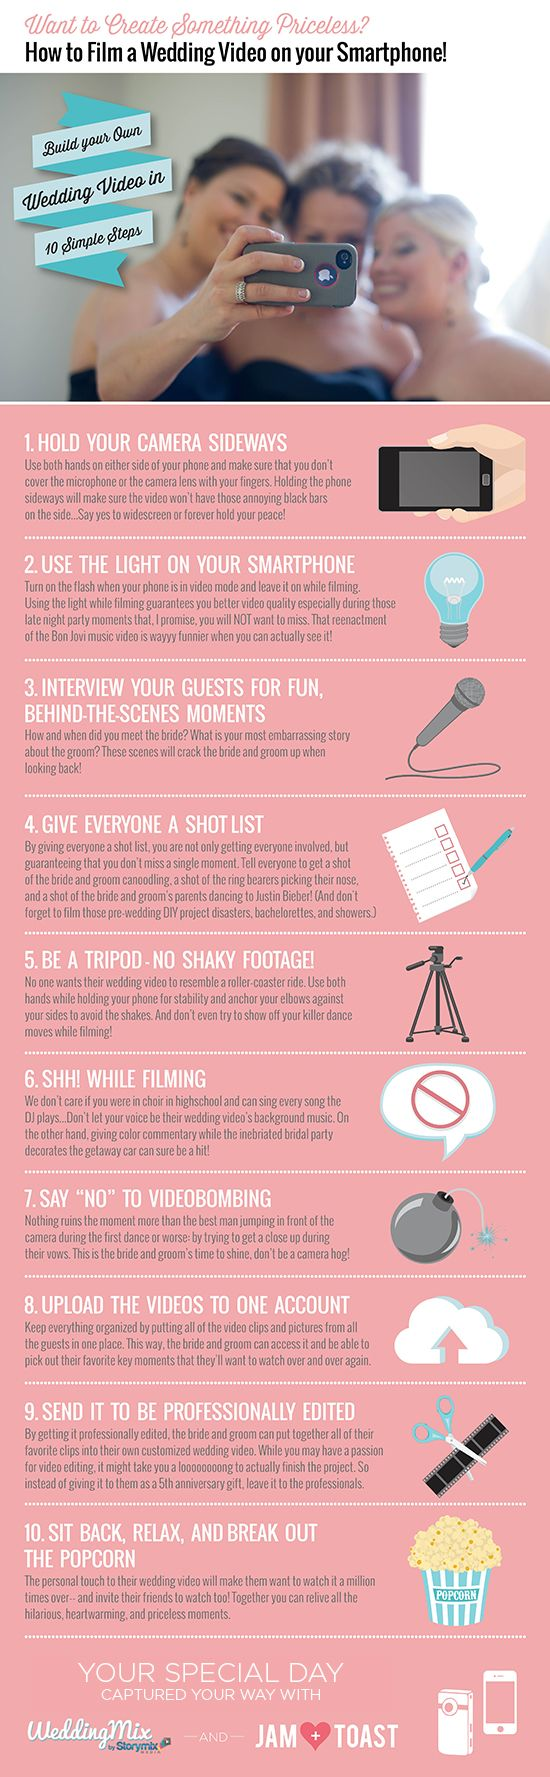 Infographic: How to Create a wedding video with your smartphone